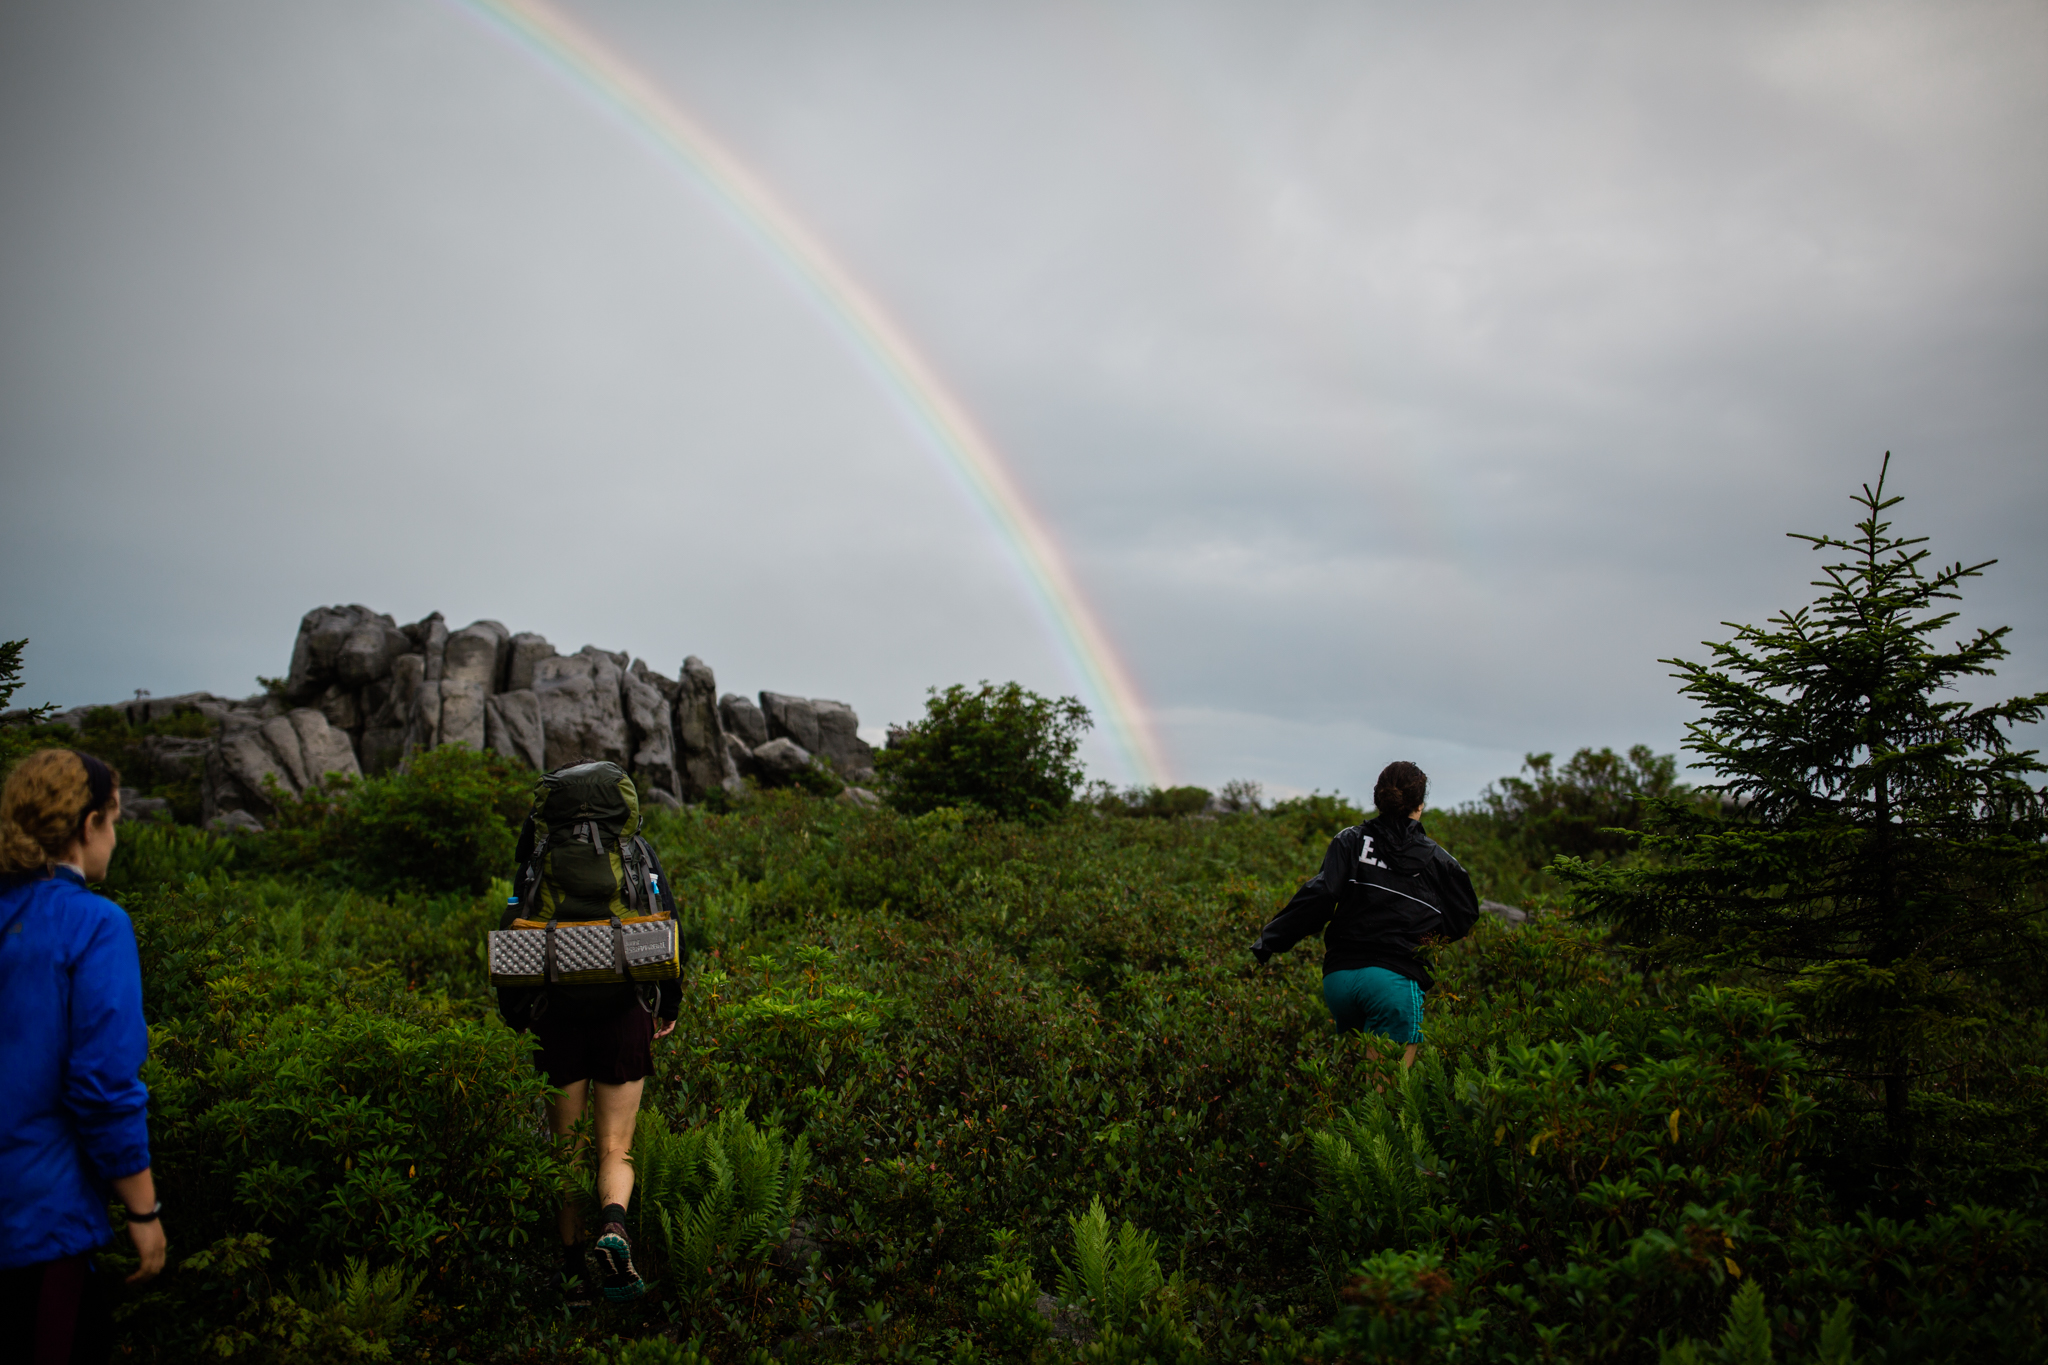 Hiking in Dolly Sods West Virginia, West Virginia adventure photographer, Dolly Sods adventures, rainy day adventures, rainy hike. A rainbow emerges during a rainy backpacking trip at Dolly Sods, WV